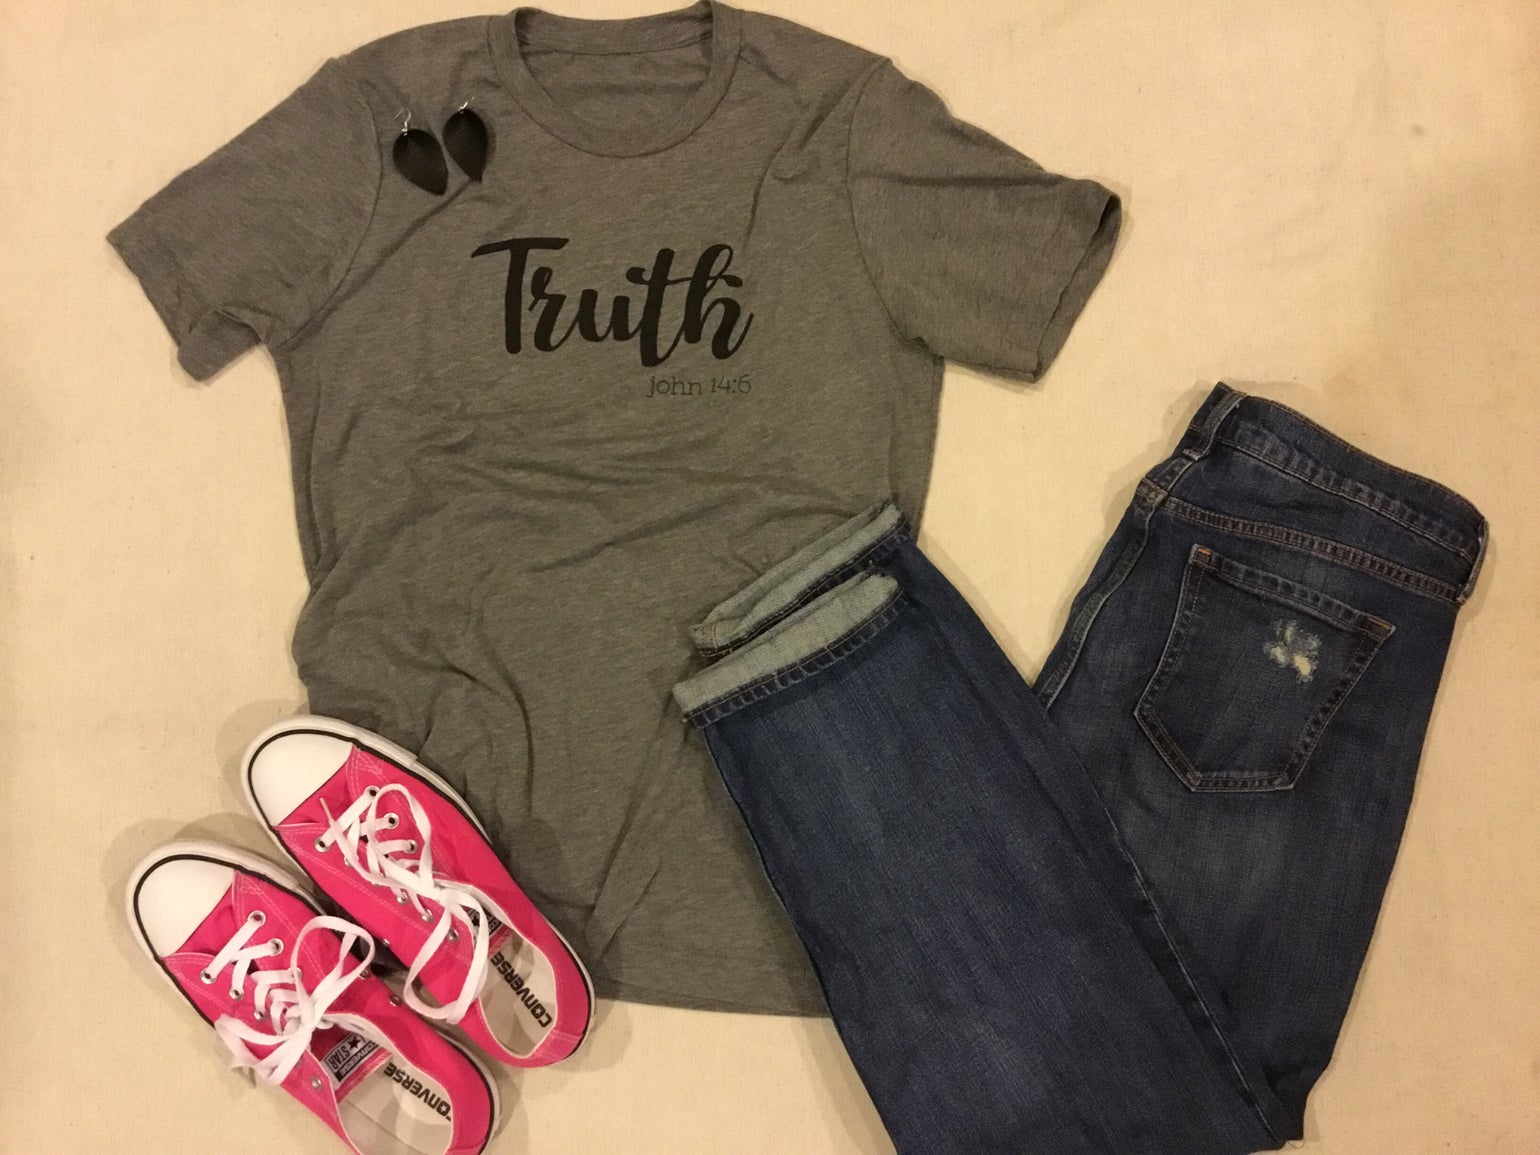 Image of Truth John 14:6 tee